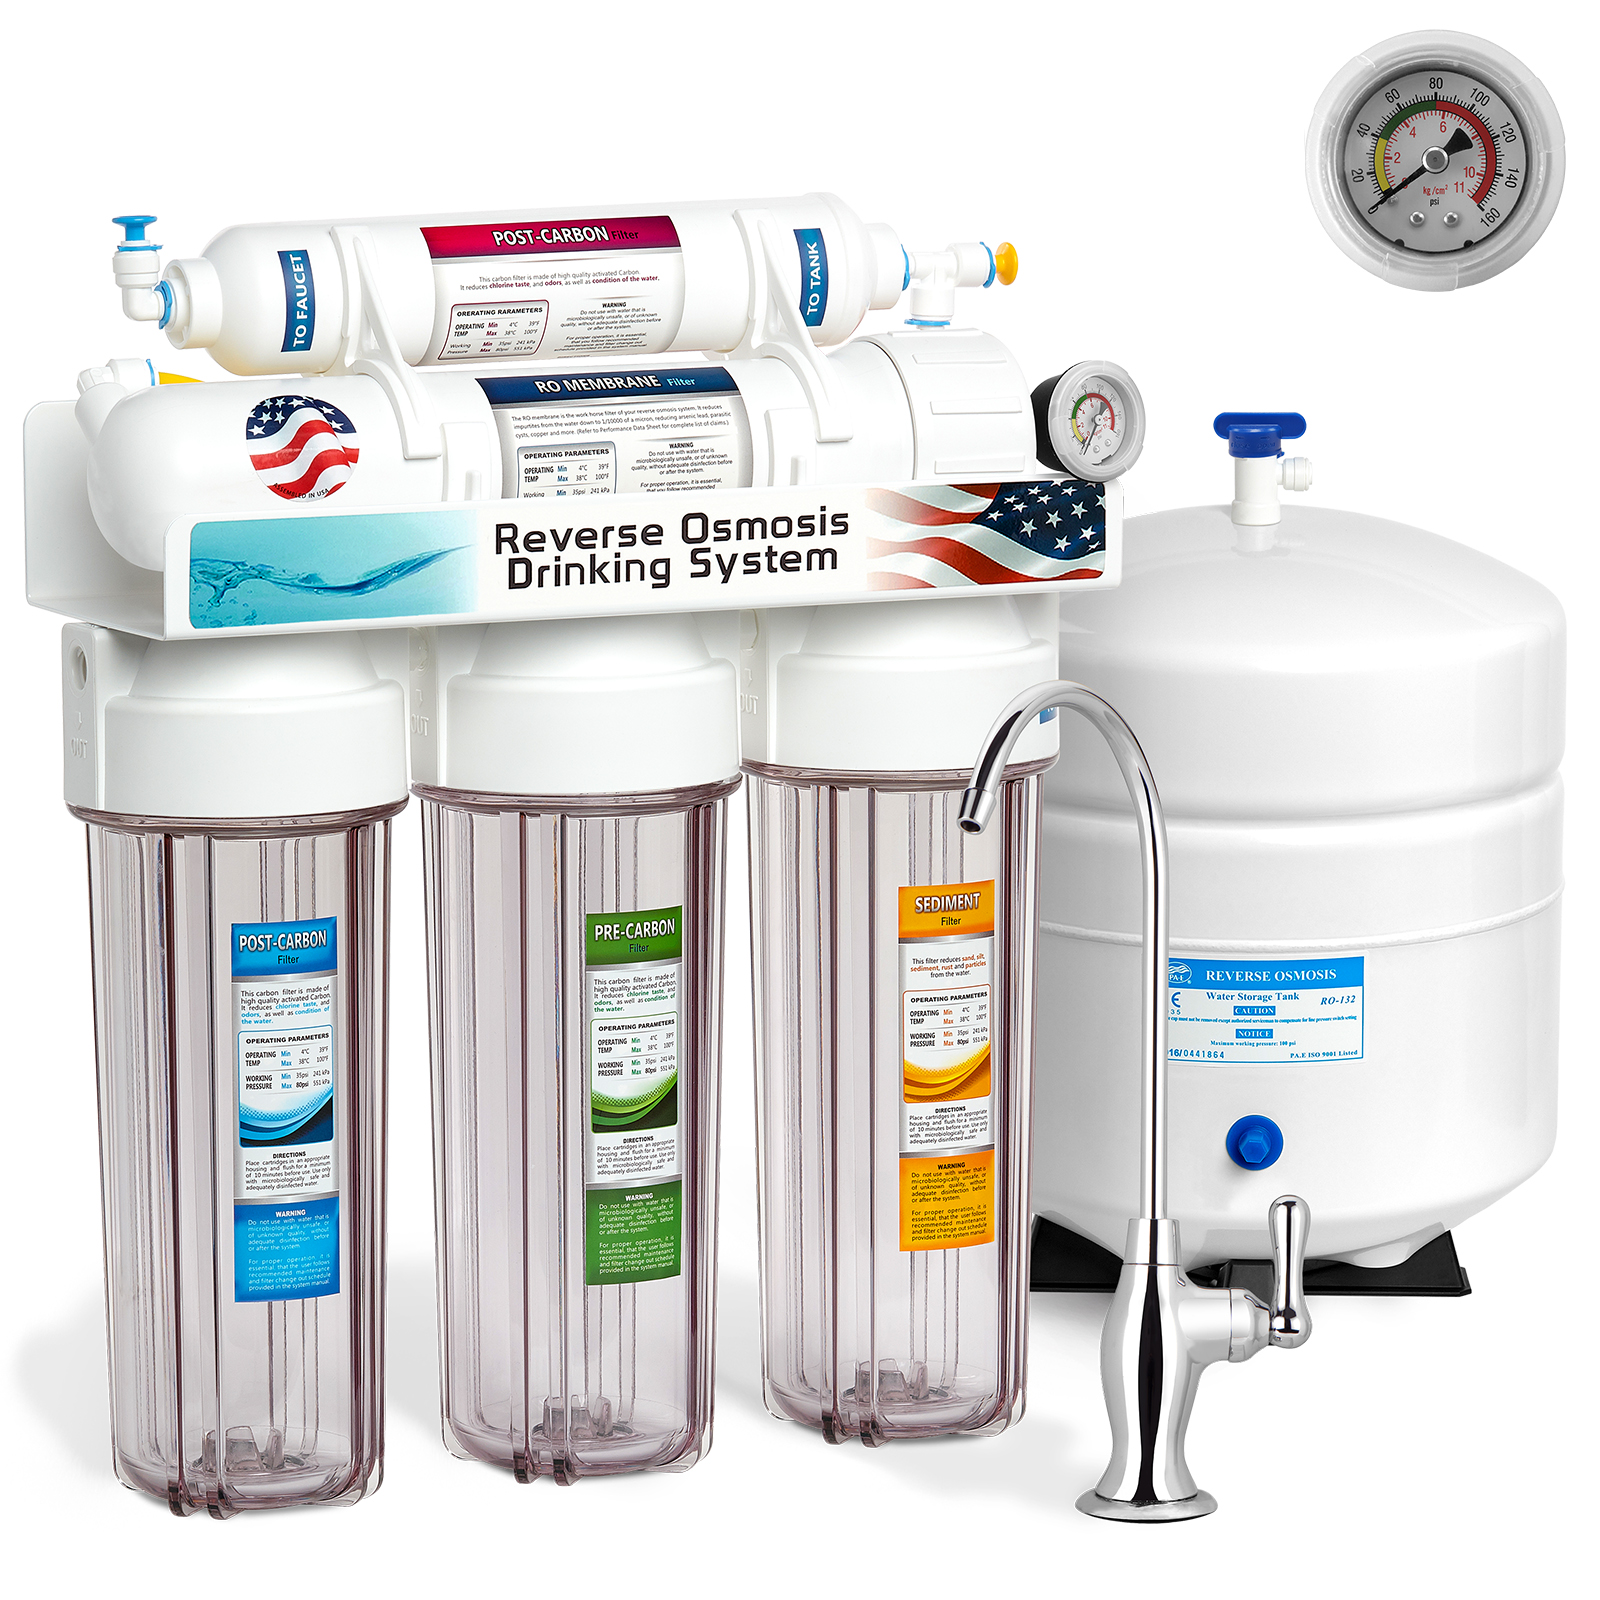 Express Water 5-Stage Undersink Reverse Osmosis Water Filter System Clear Pressure Gauge 50GPD - RO5DCG